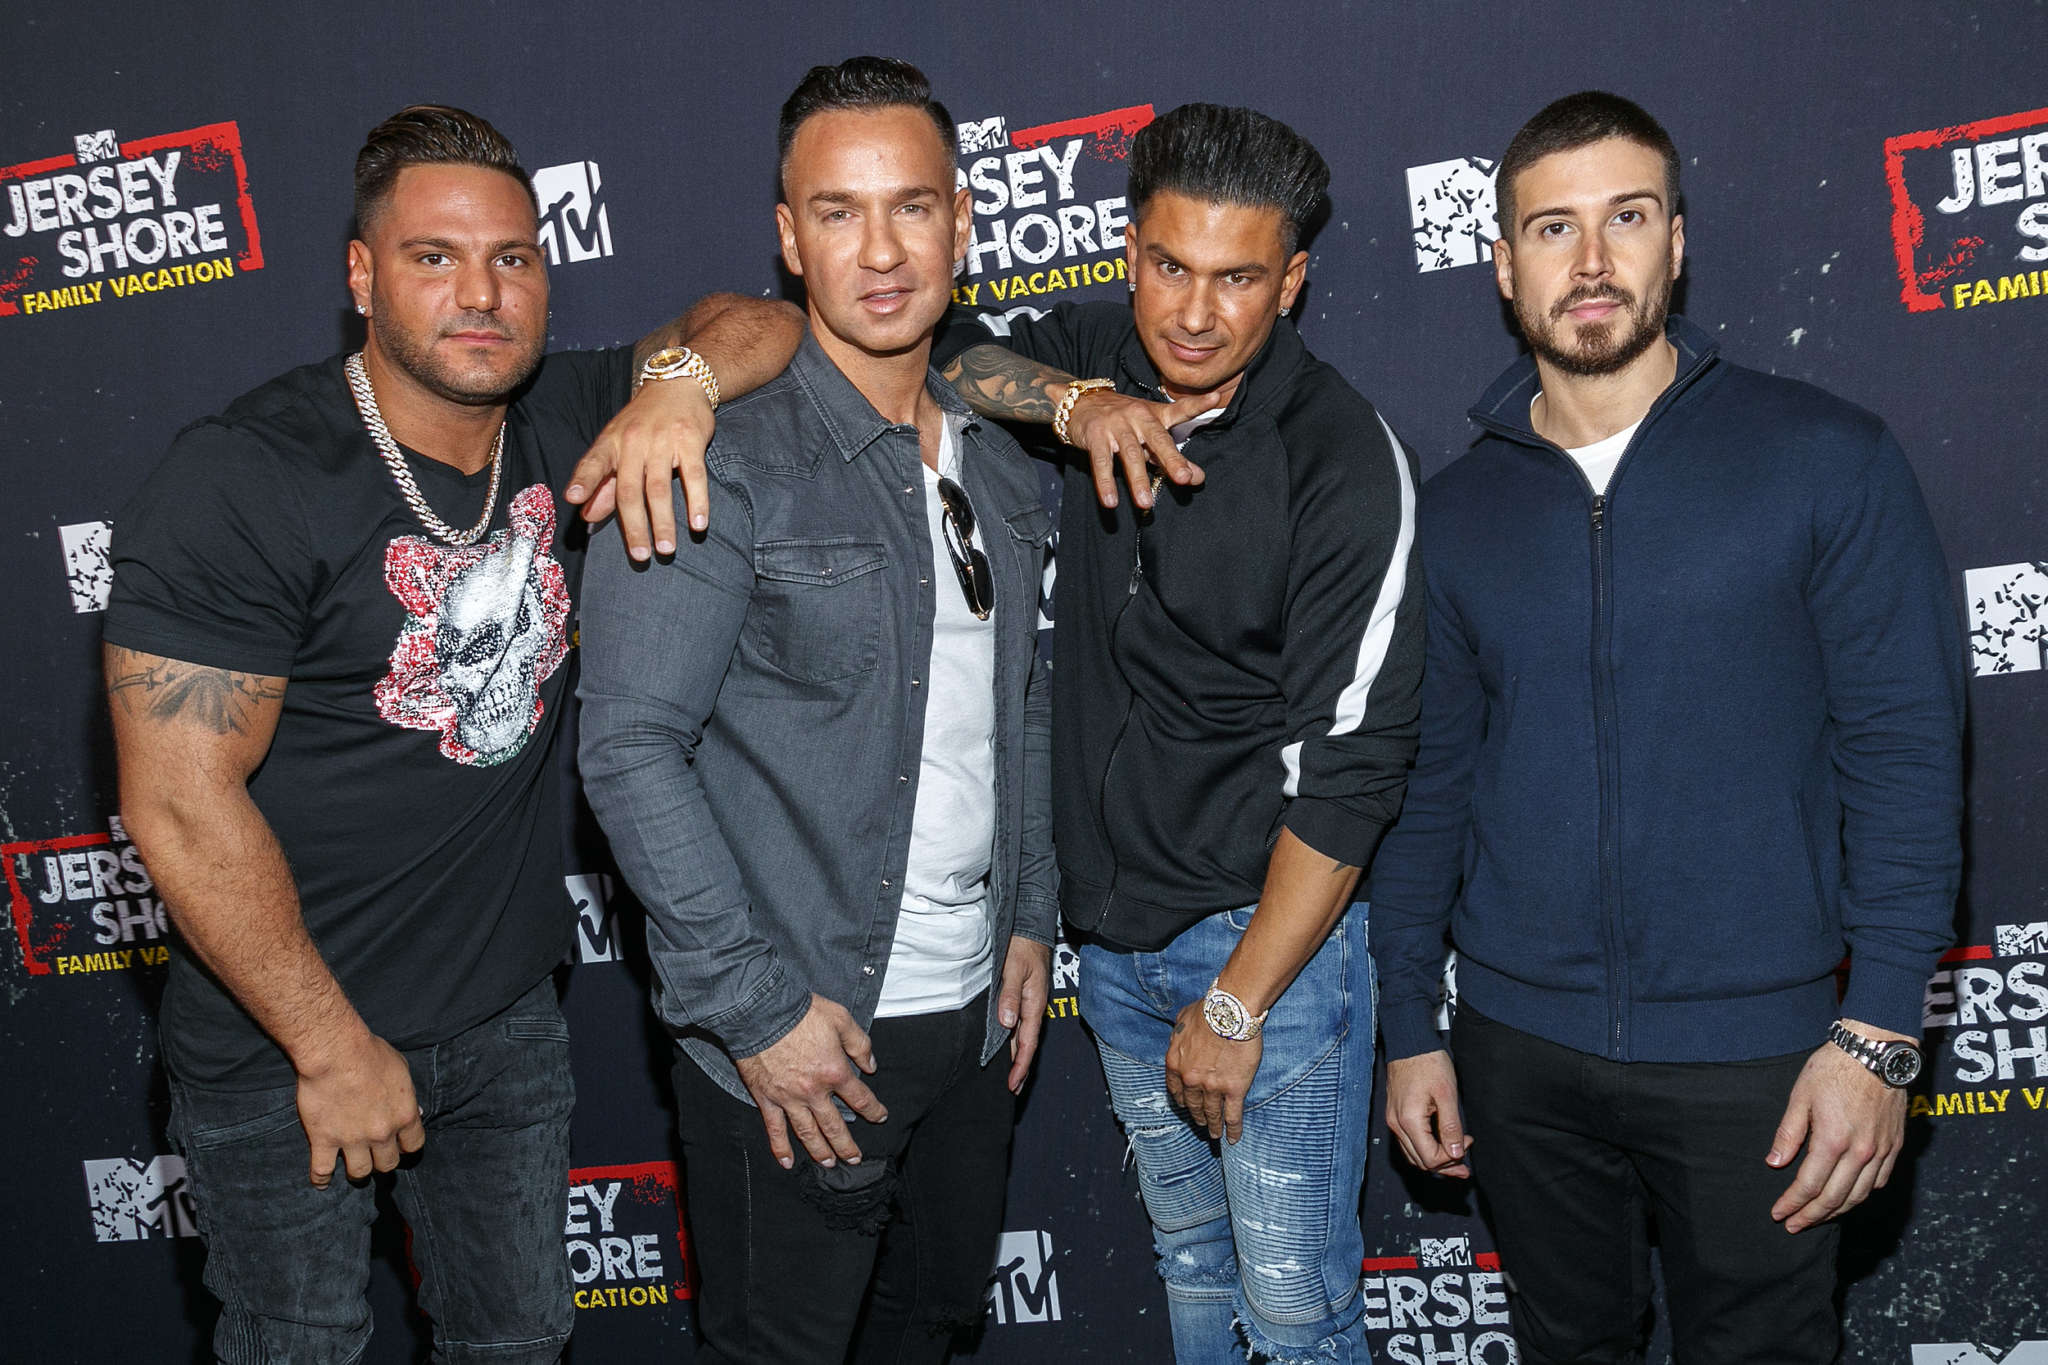 Jersey Shore Returning After Being Filmed In Bubble